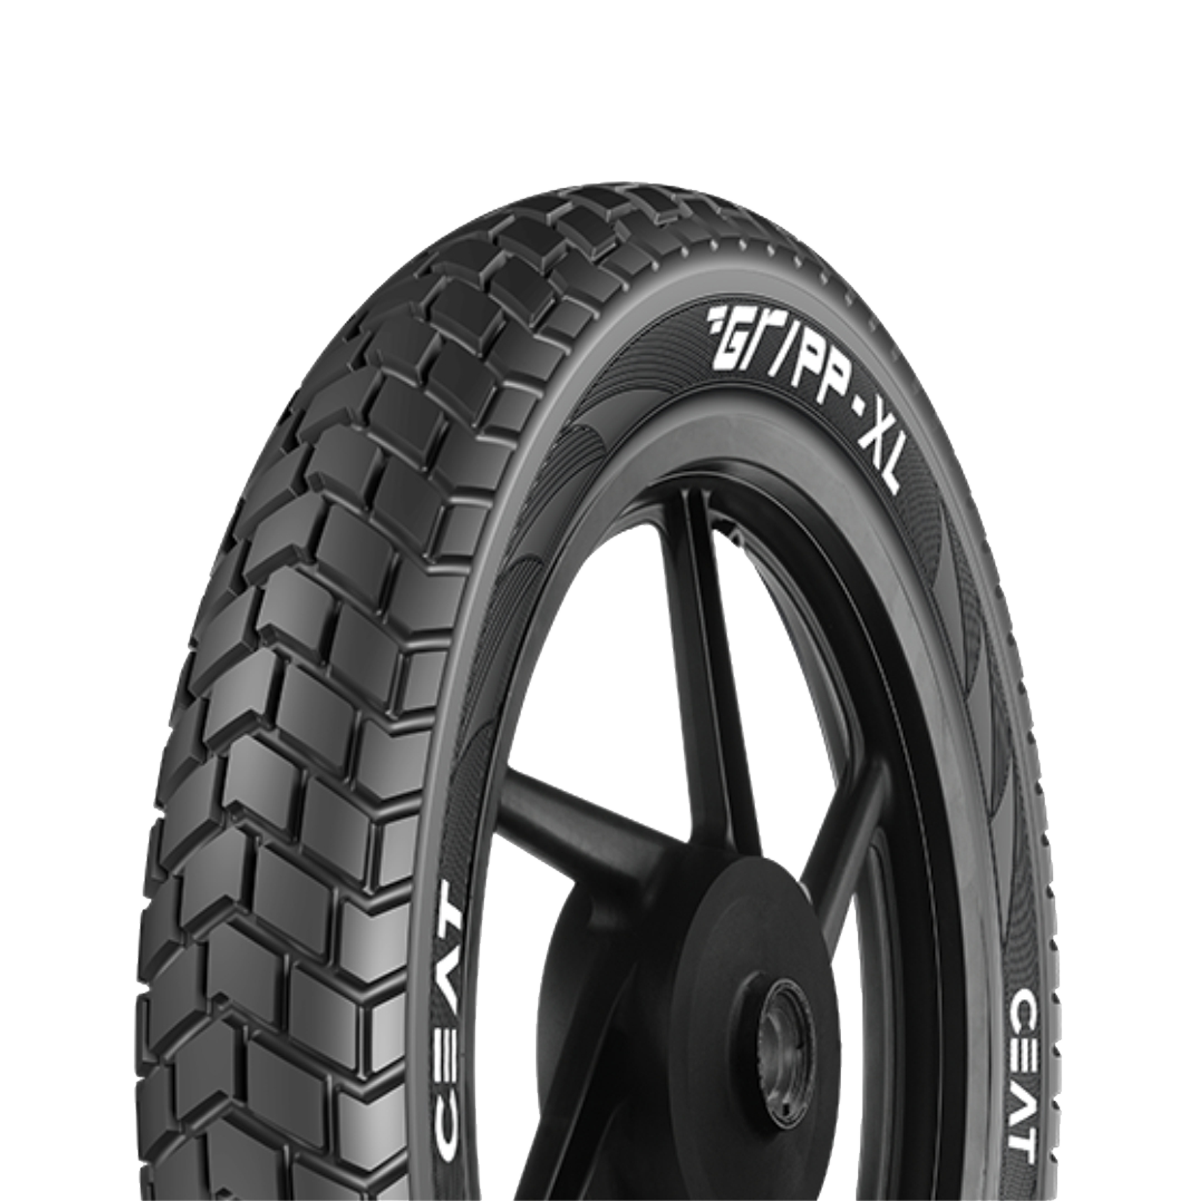 Ceat GRIPP XL 90/90 - 19 Tubeless 52 P Front Two-Wheeler Tyre